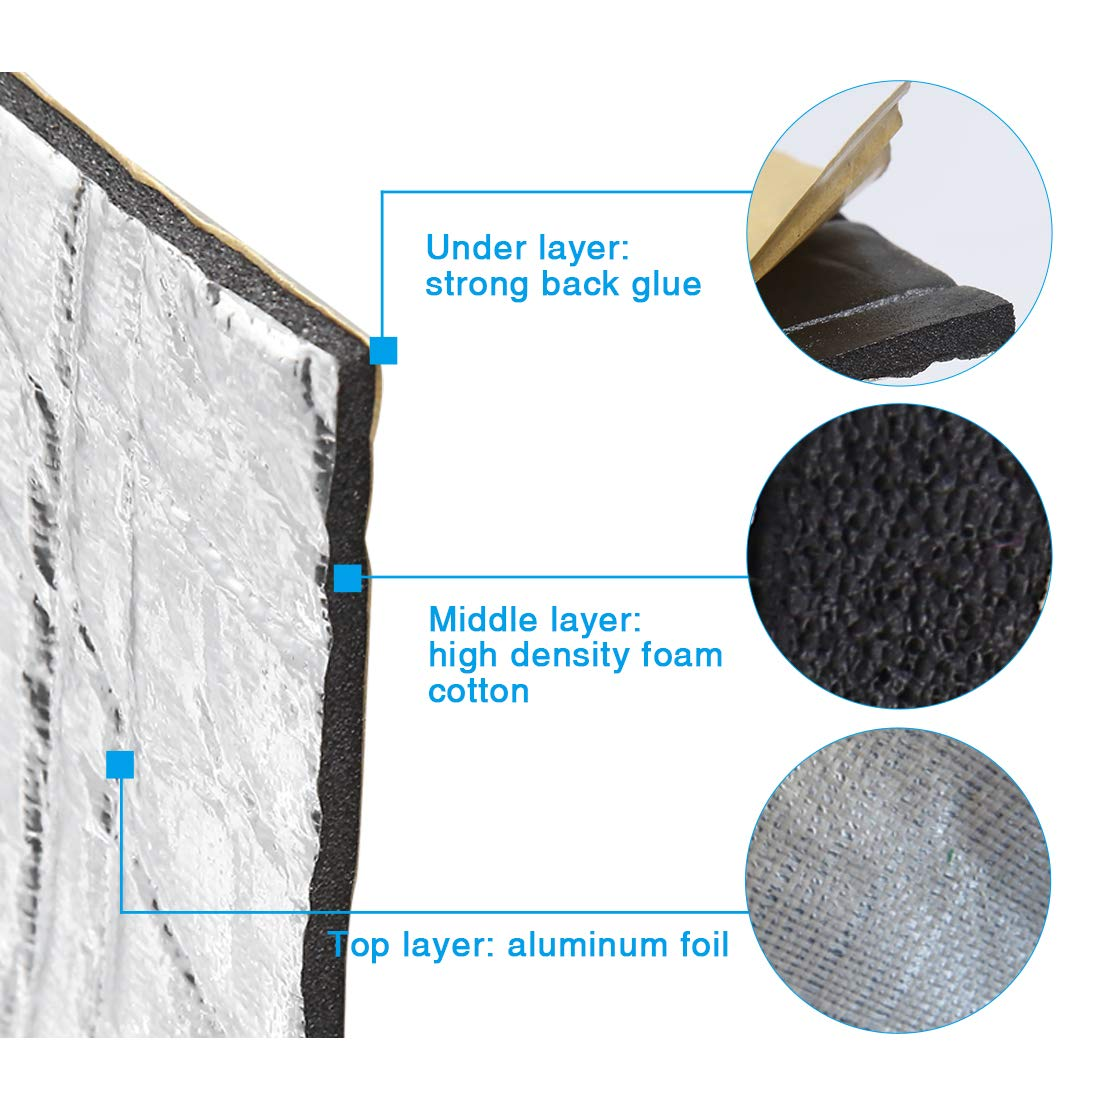 uxcell 197mil//5mm 86sqft Sound Deadening Heat Deadener Insulation Mat Intensive Alumium Foil Acoustic Barrier 314.96 inches x 39.37 inches// 800 x 100cm